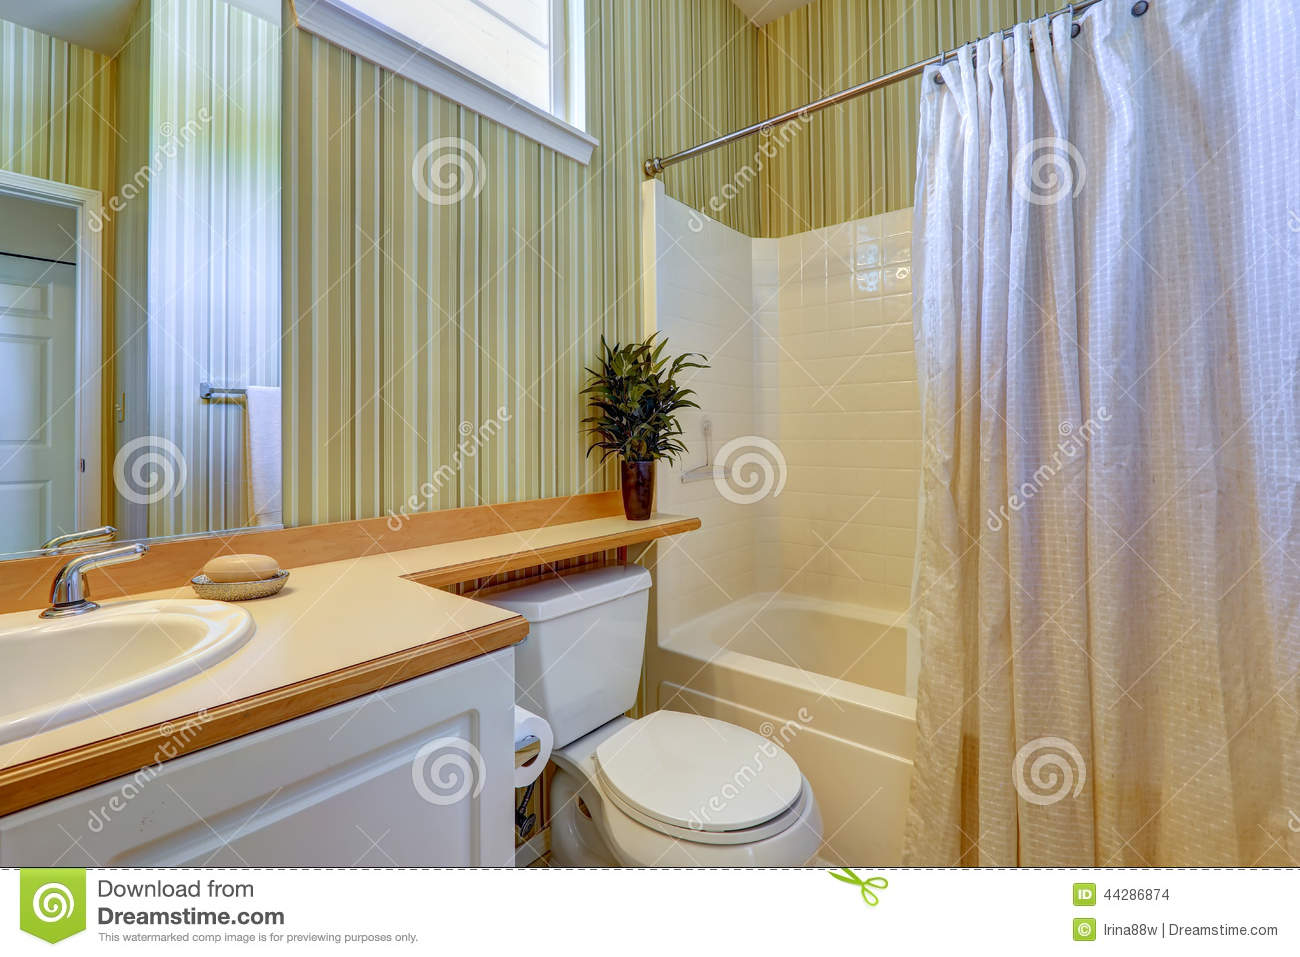 Simple Bathroom Interior With Green Wallpaper